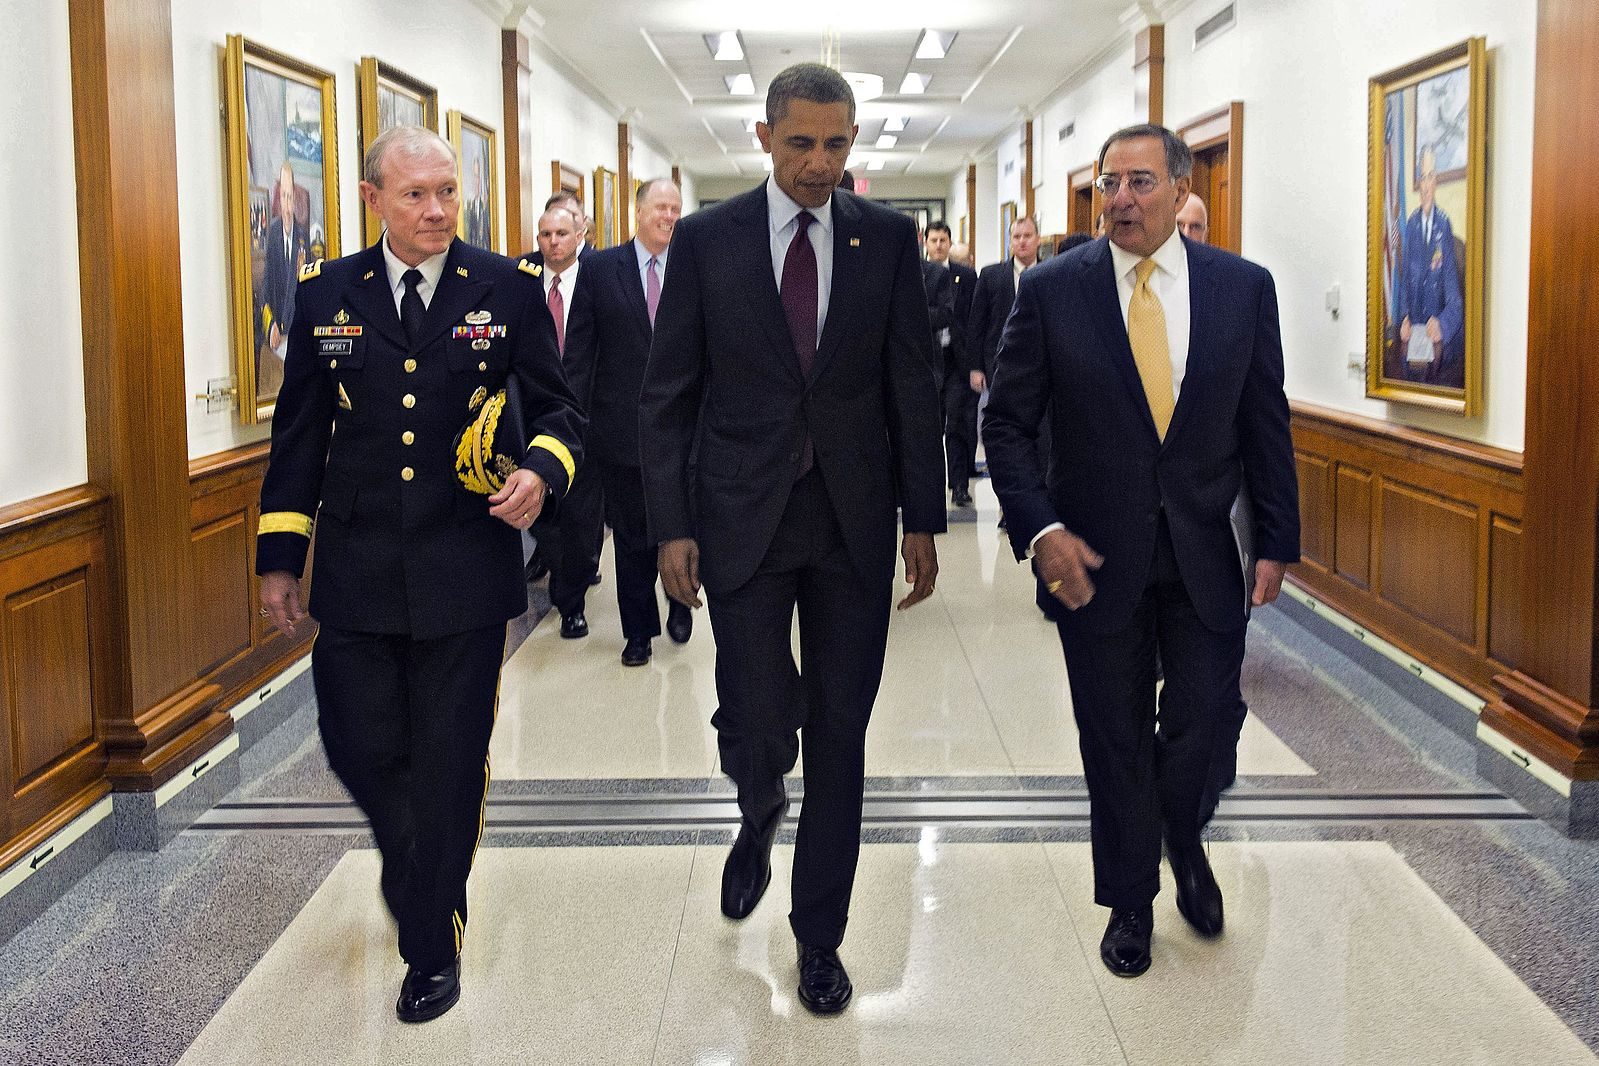 President Barack Obama walks with Defense Secretary Leon E. Panetta and Army General Martin E. Dempsey, Chairman of the Joint Chiefs of Staff, to a press briefing at the Pentagon, Jan. 5, 2012. (DOD Photo/Wikimedia)